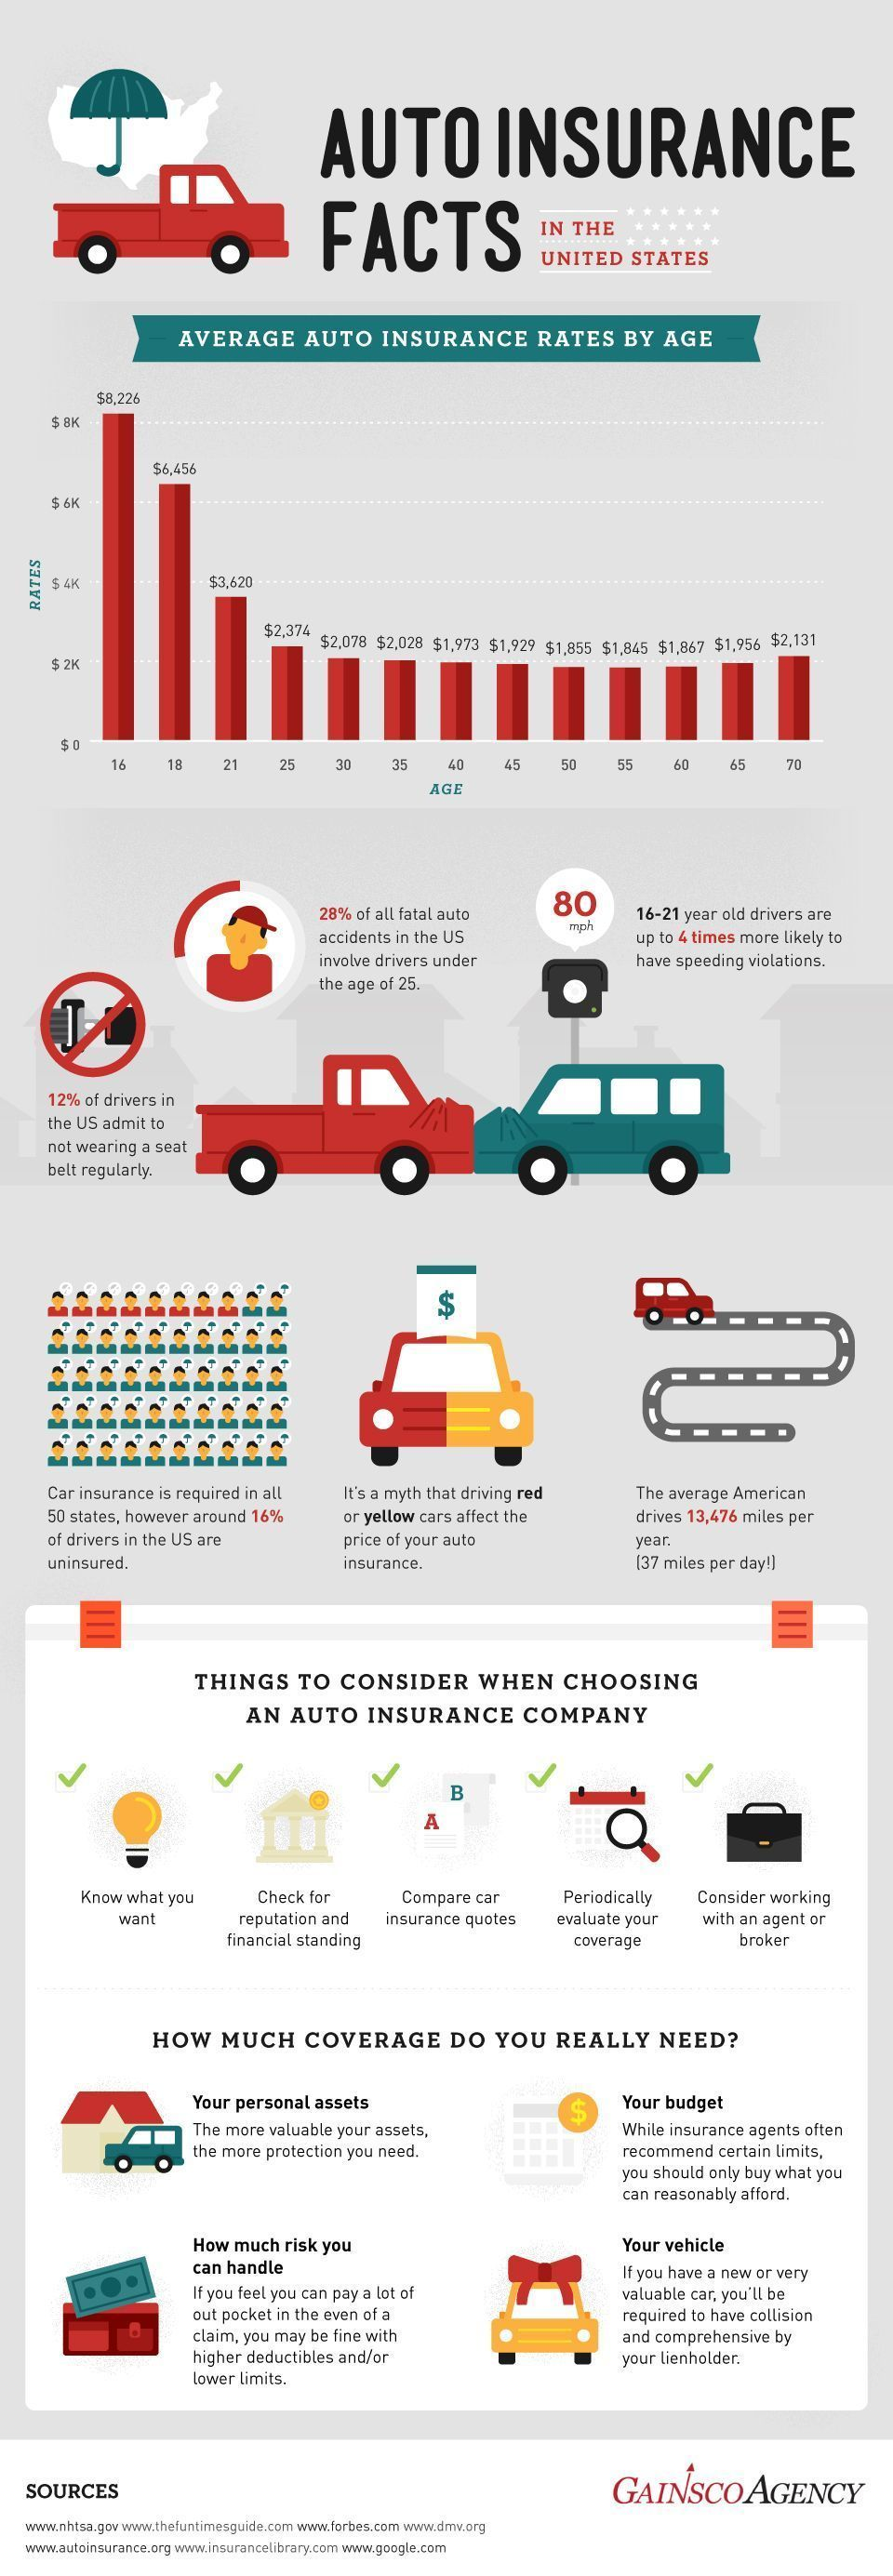 Auto Insurance Facts in the Untied States Infographic via